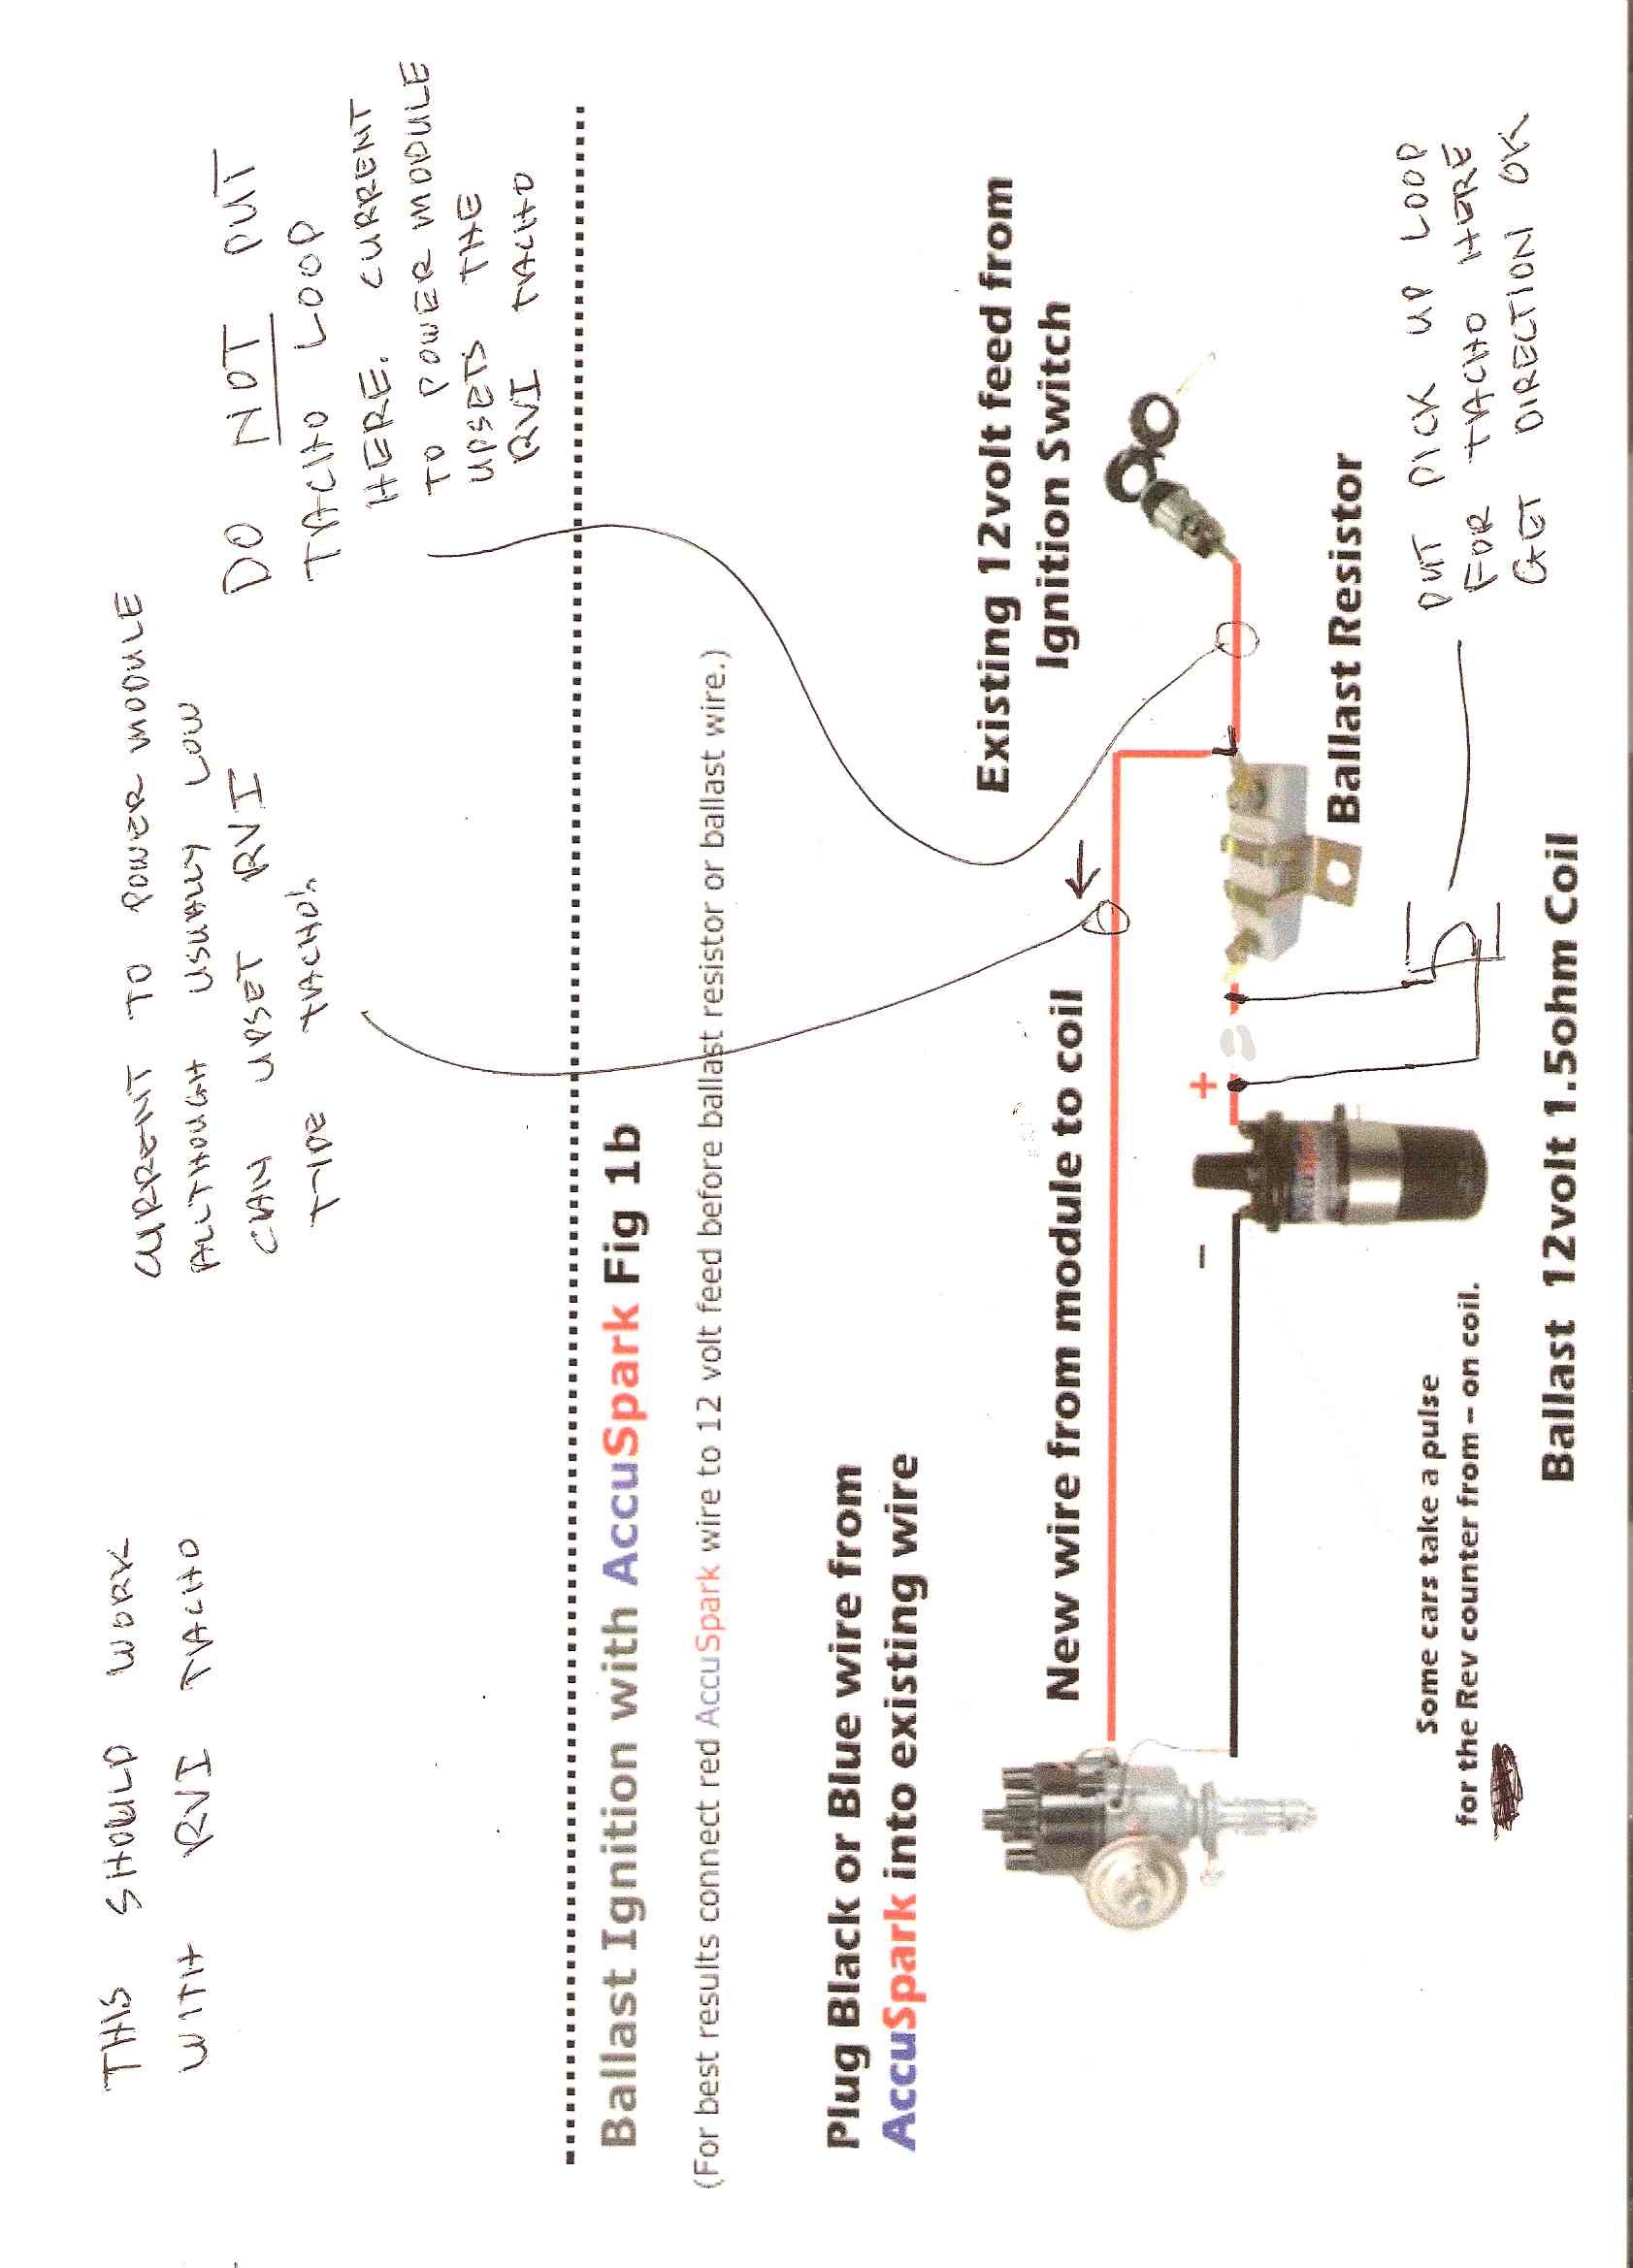 Simple Ballast Wiring Just Wirings Diagram T12 Electronic No Tacho After Accuspark And Resistor Electrical Rh Lotuselan Net 4 Lamp